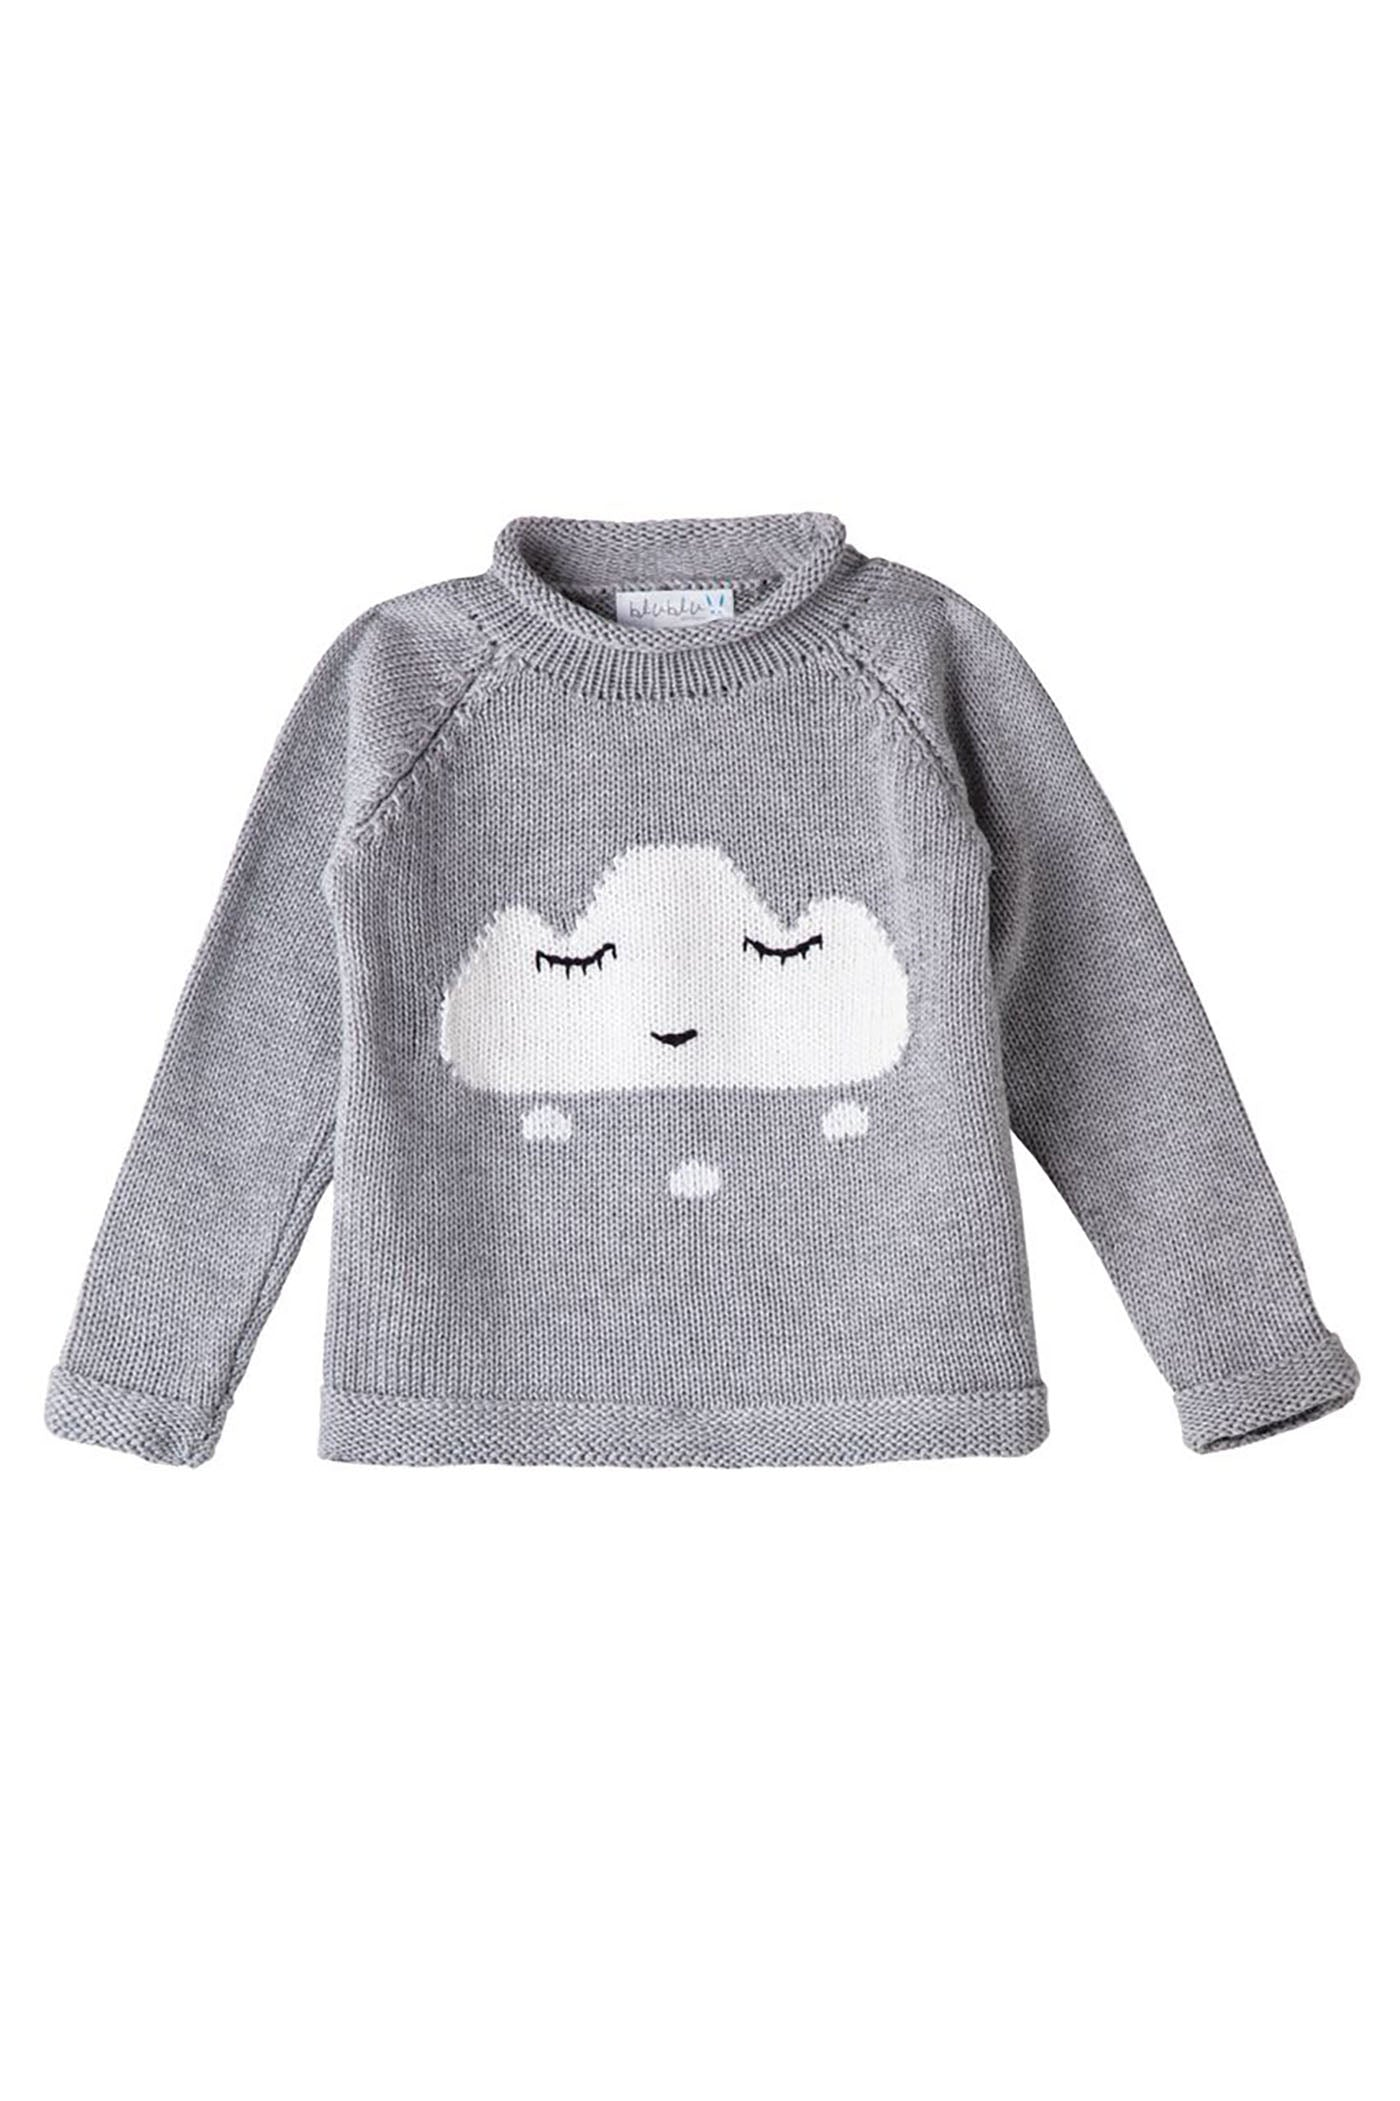 Smiley Cloud Sweater Julimoon